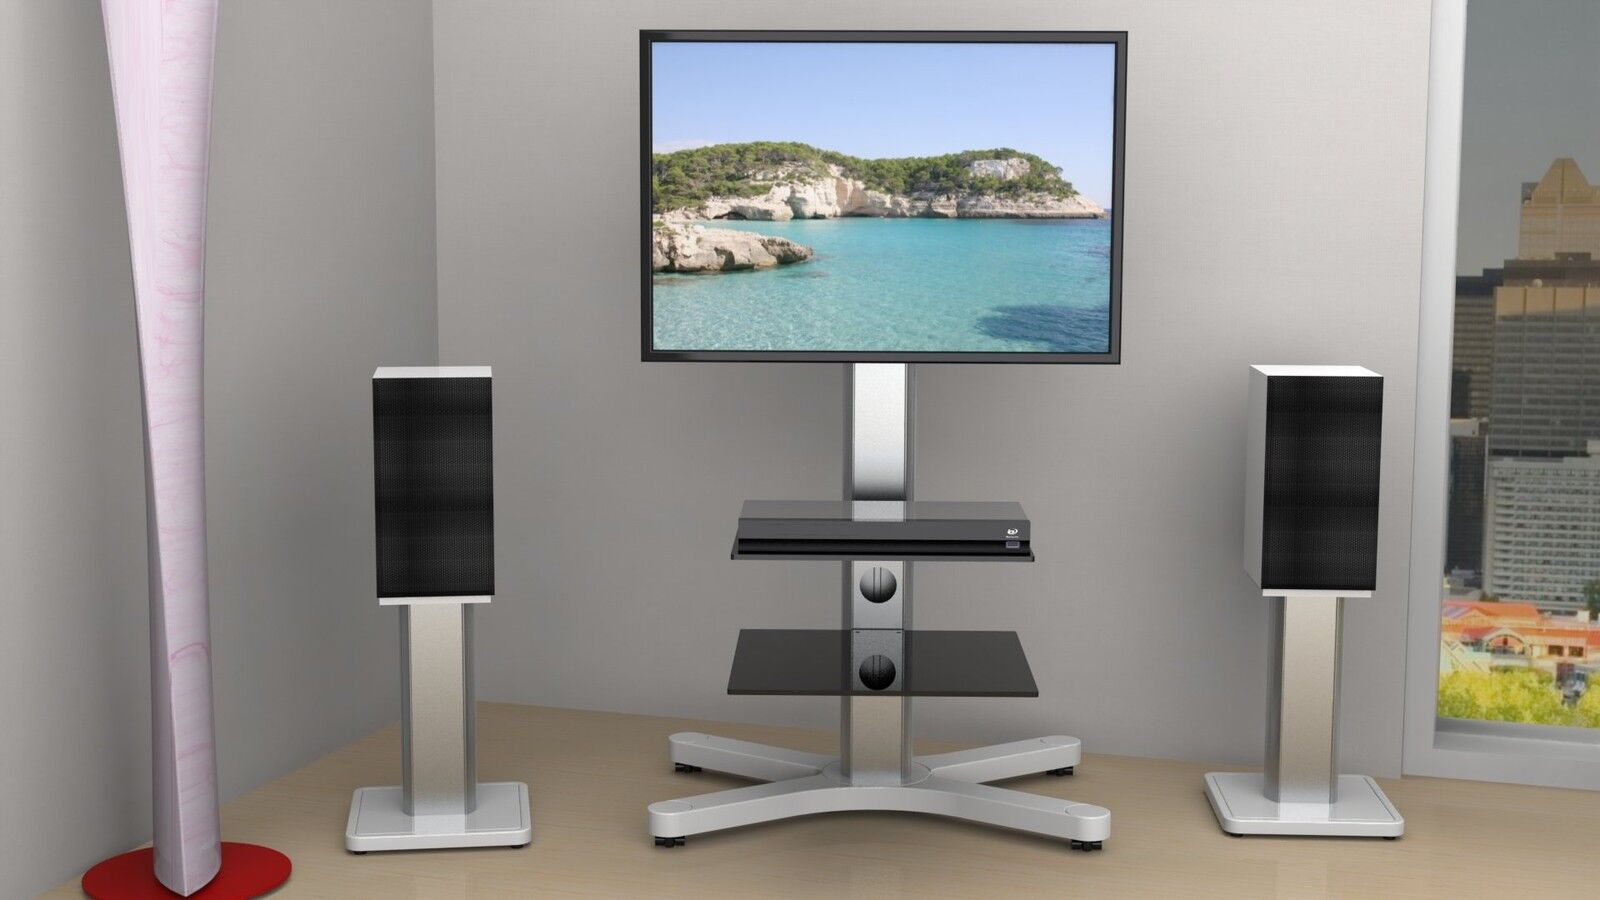 led lcd plasma tv st nder halter fu standfuss x tower. Black Bedroom Furniture Sets. Home Design Ideas